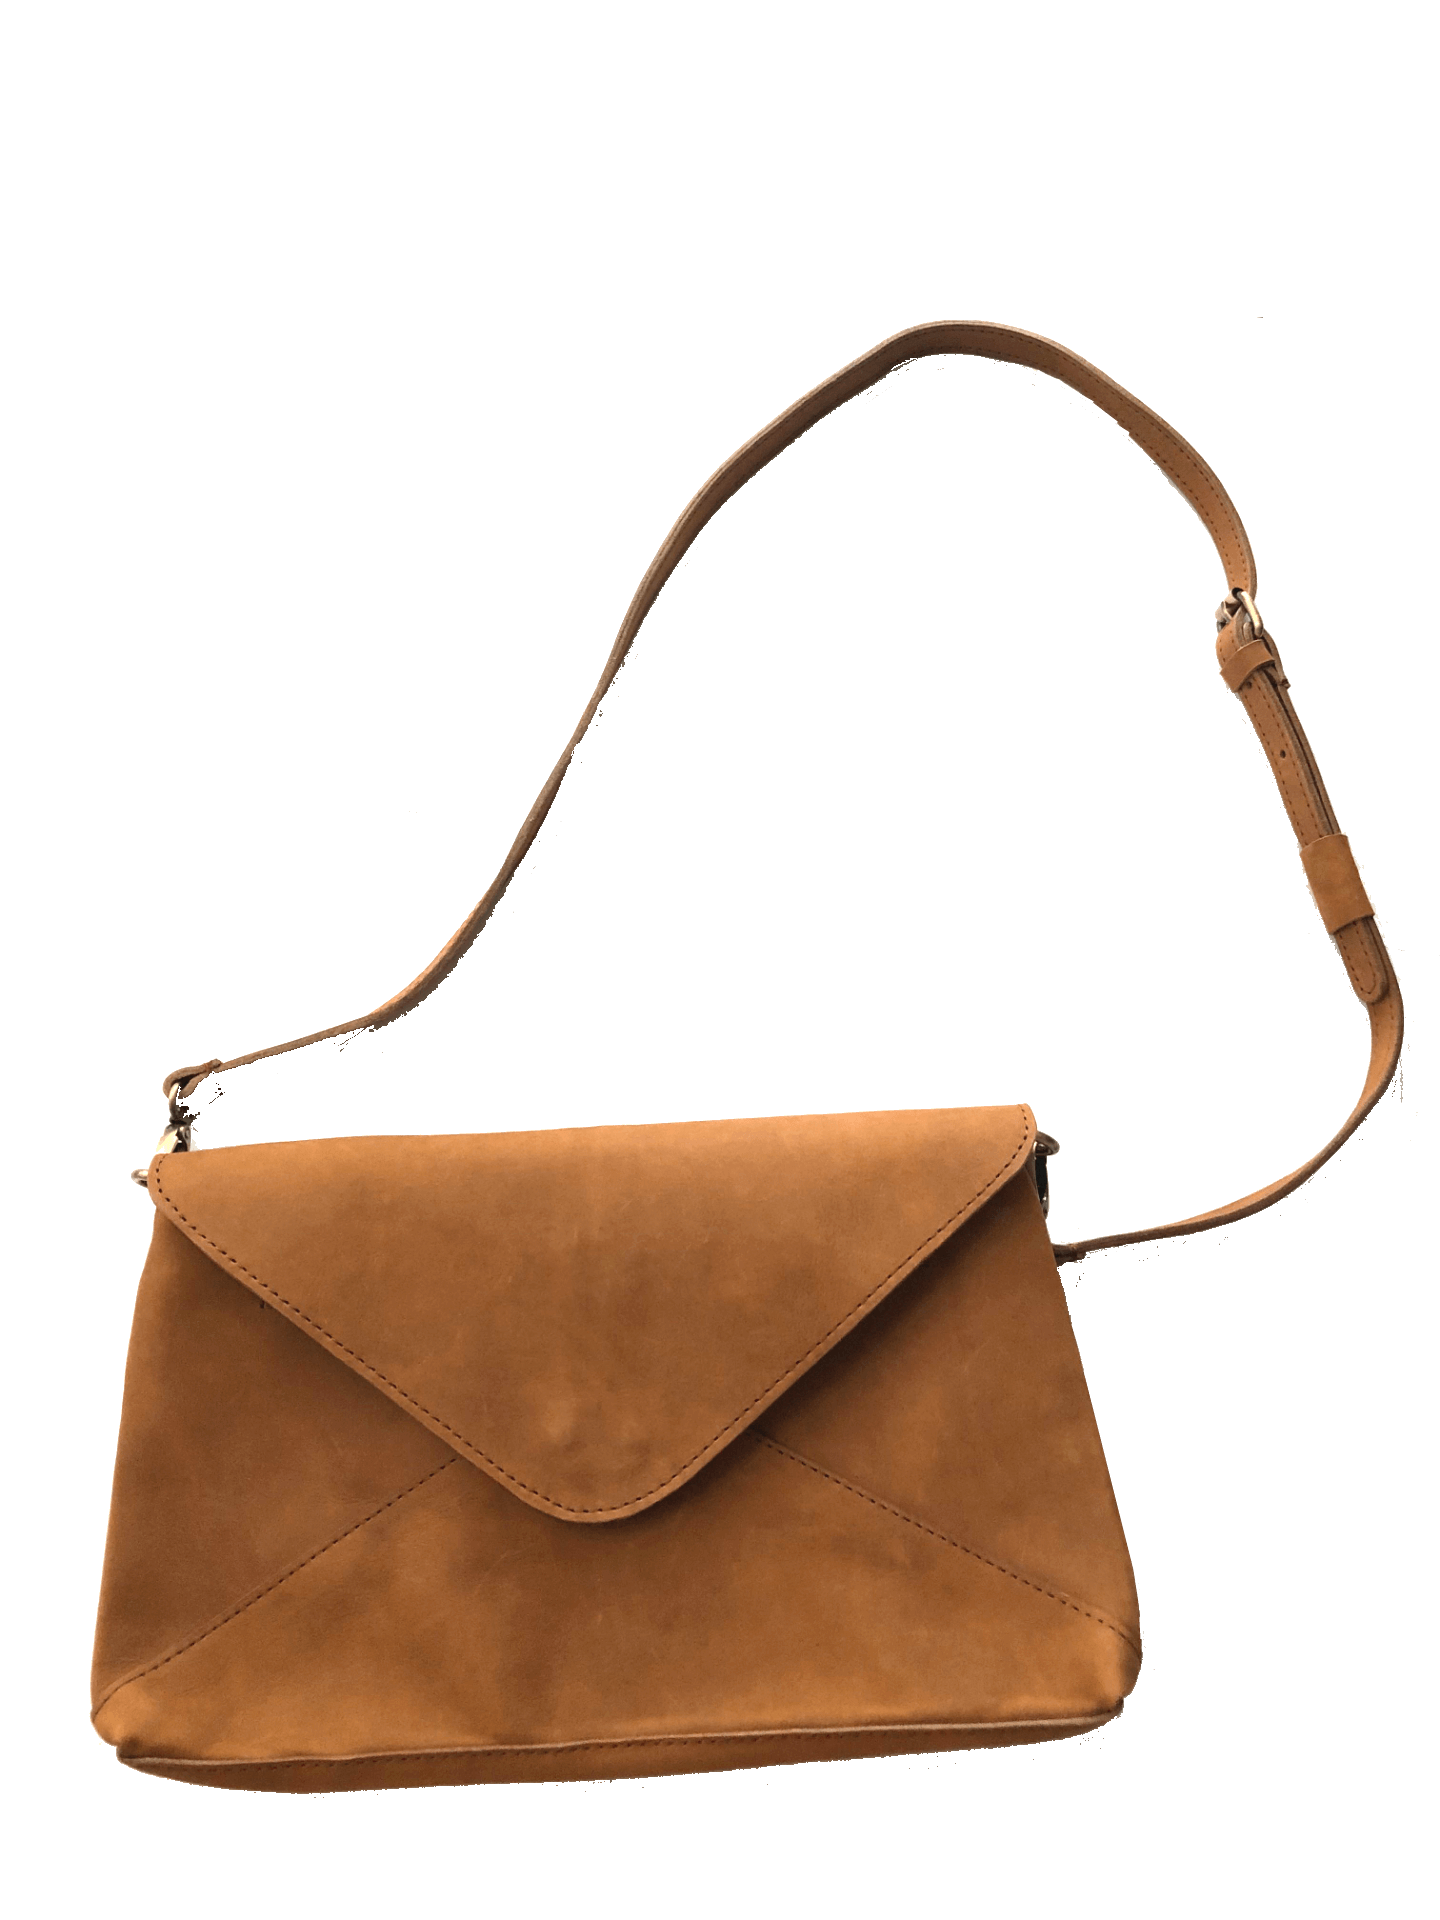 Madrid Tan Leather Envelope Pouch with Strap cross body bag